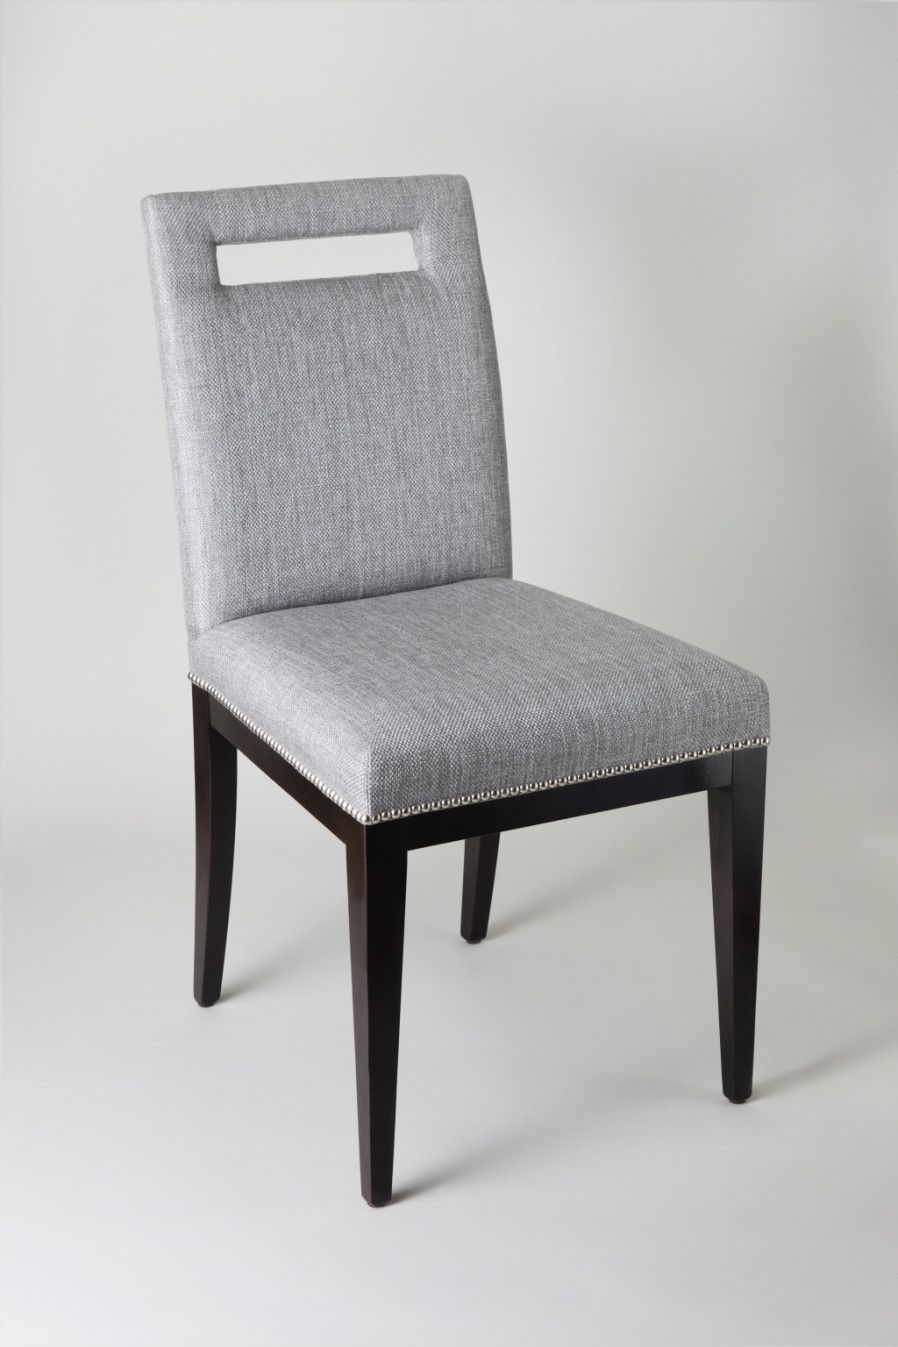 70 Fabric Parsons Dining Chairs Modern Used Furniture Check More At Http